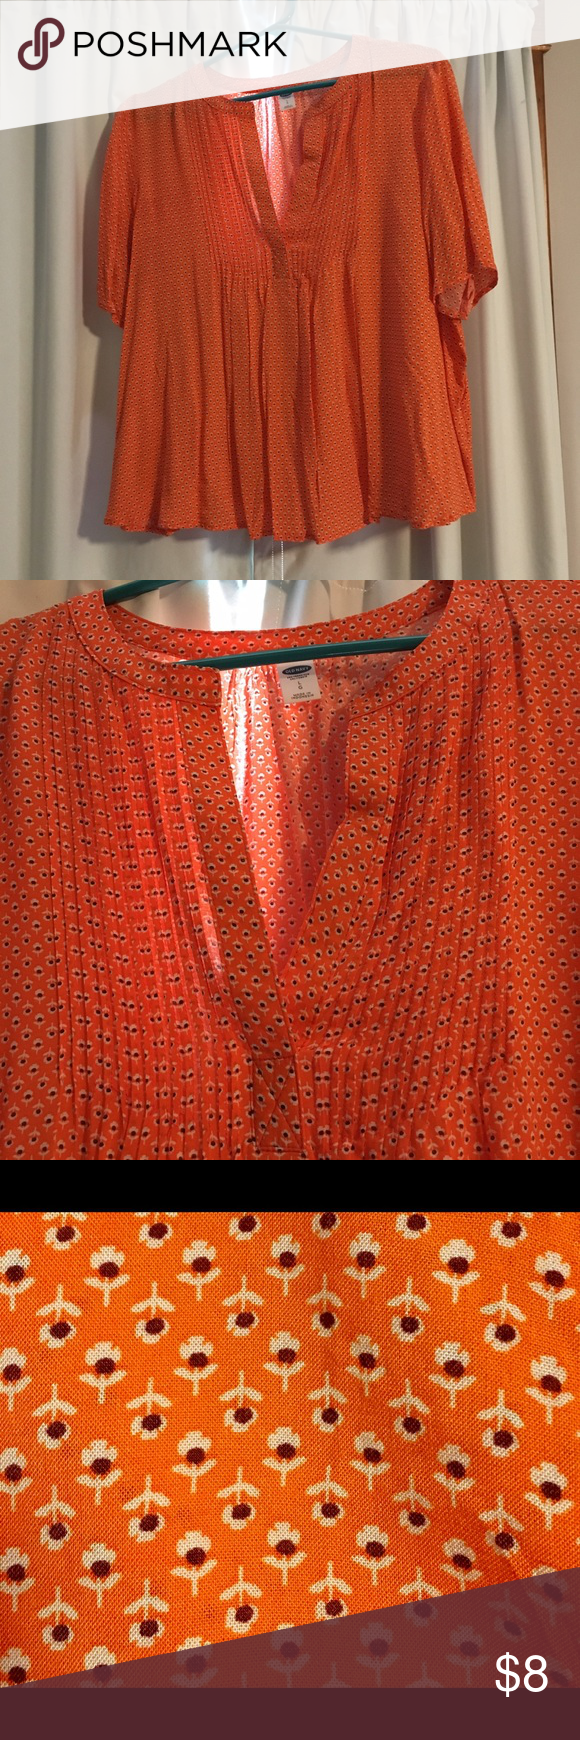 Orange Blouse Lightweight blouse; floral pattern; V-Neck with pleated front detail. Length hits barely below waist so it is more of a cropped than average length. Worn once. No trades. Old Navy Tops Blouses